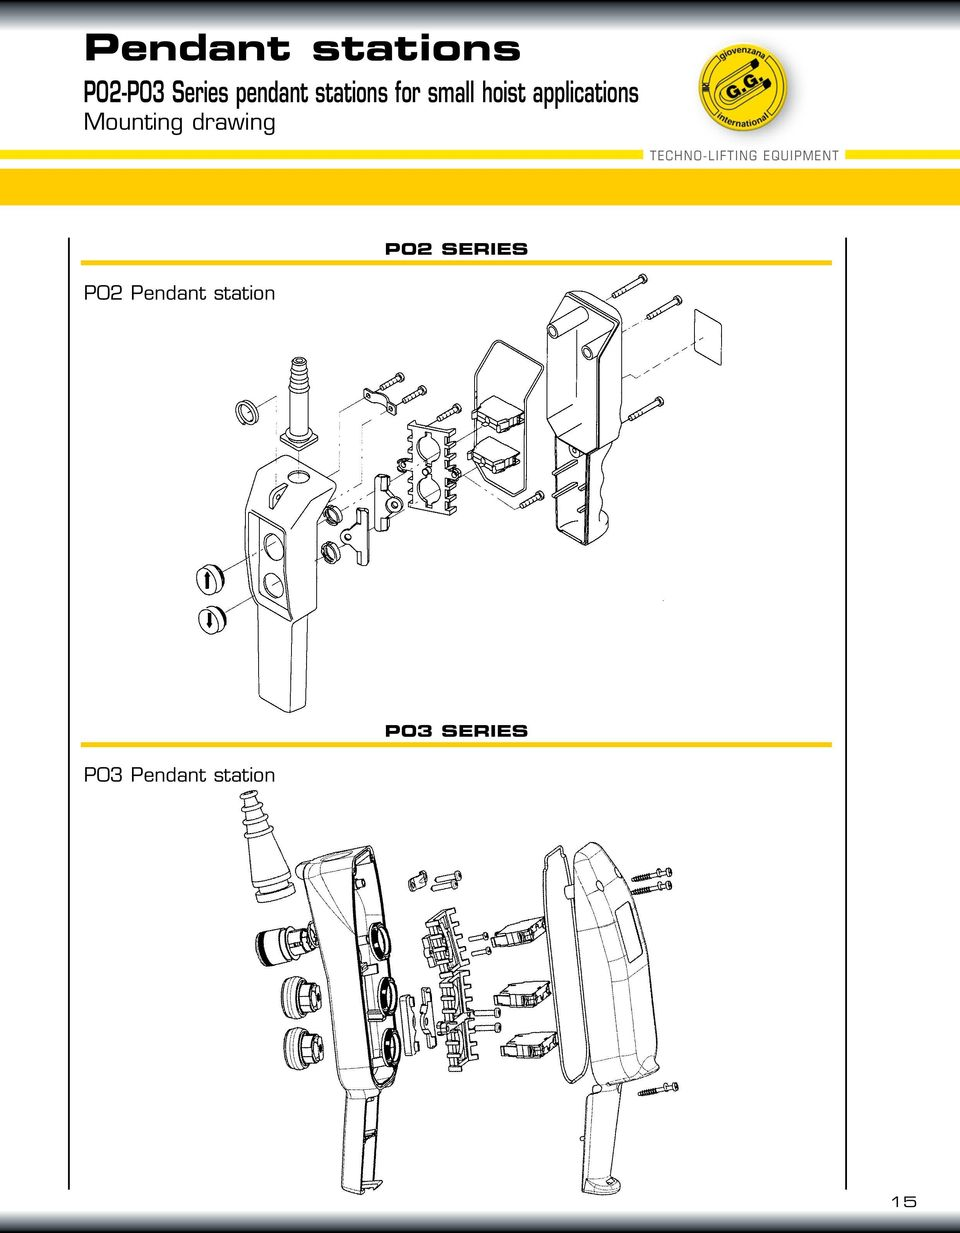 medium resolution of mounting drawing techno lifting equipment p02